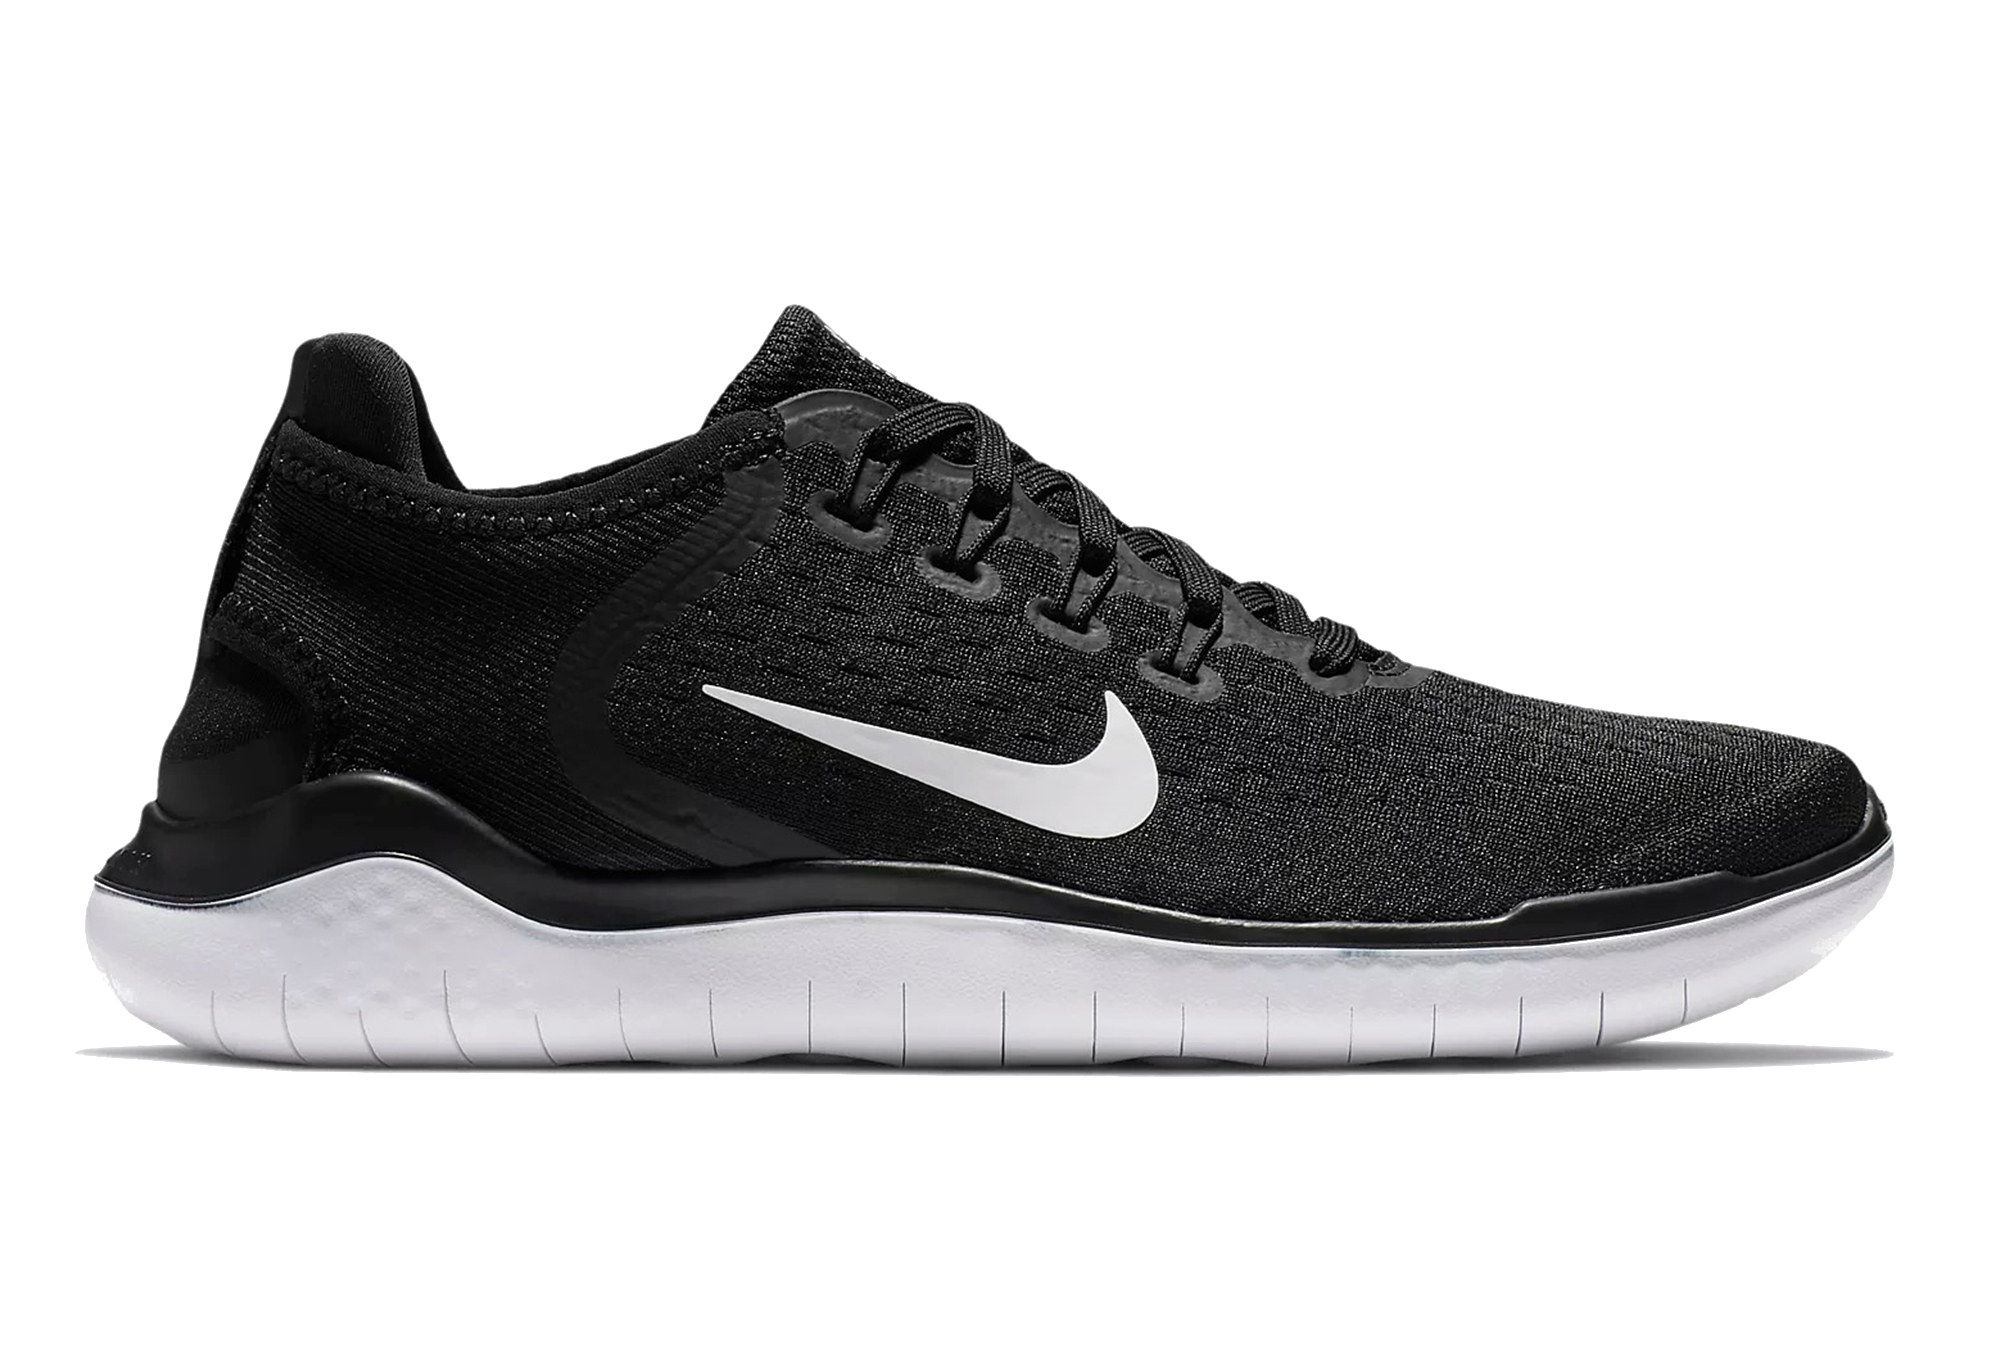 cheaper huge selection of where to buy Nike Shoes Free RN 2018 Black White Women